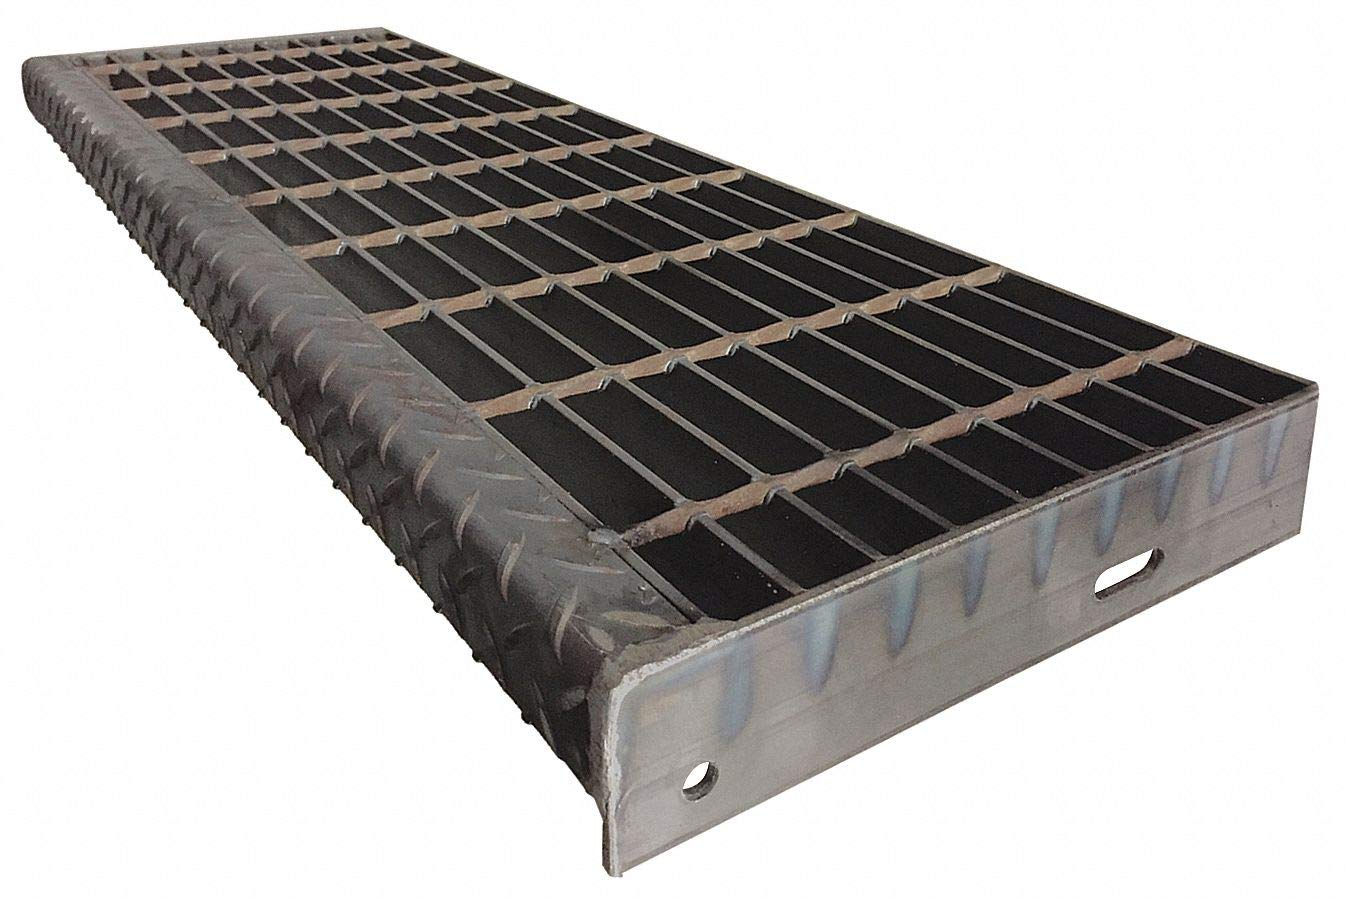 Carbon Steel Smooth Surface Bar Grating Stair Tread, 36'' Width, 9.75'' Depth, 2'' Height by DIRECT METALS